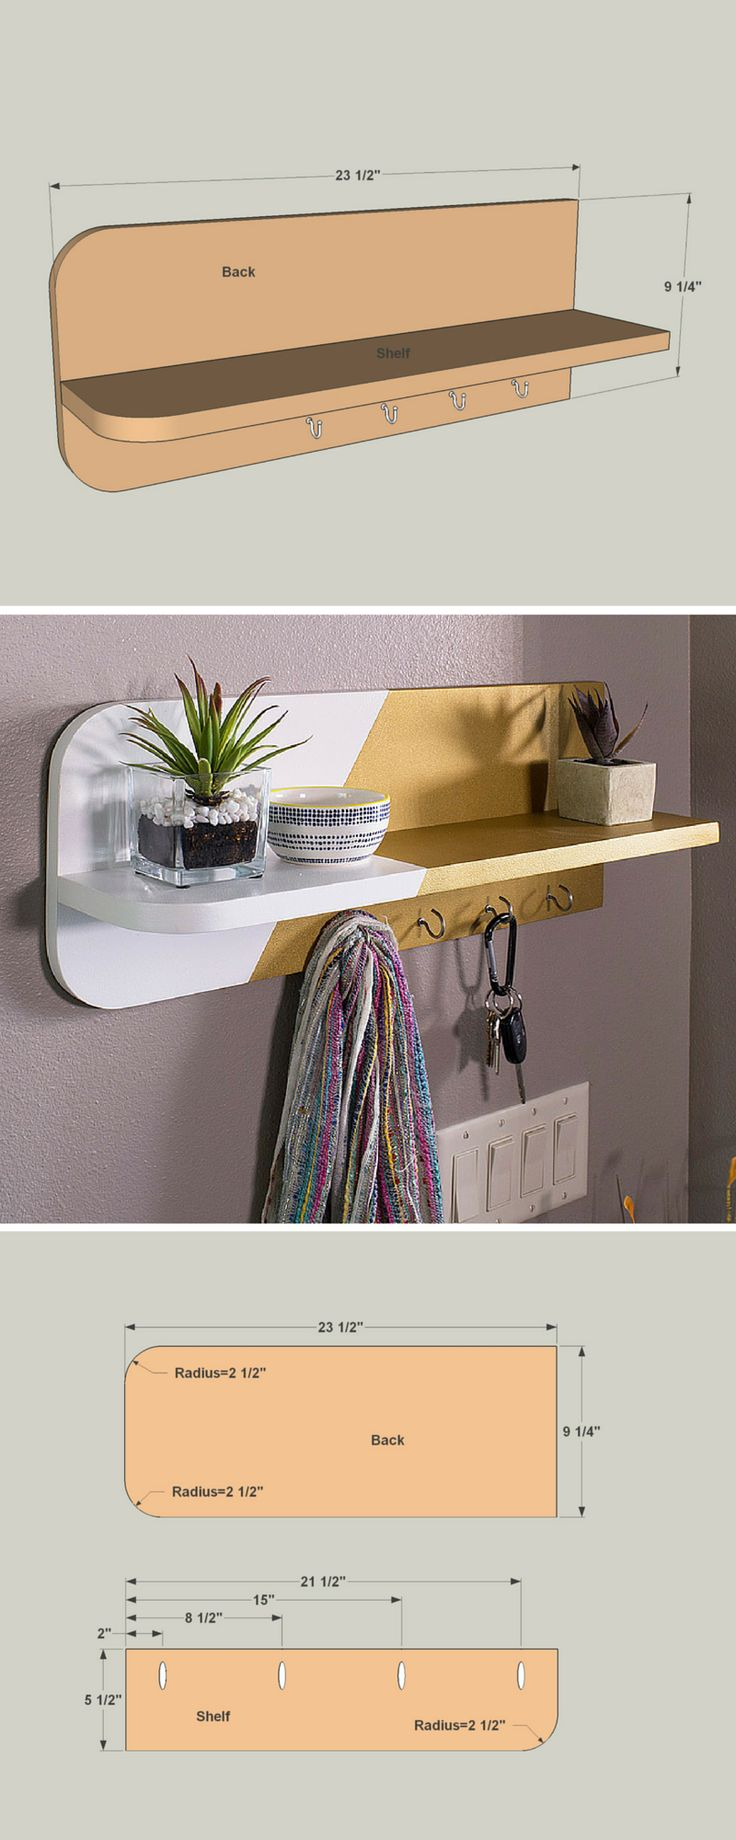 How to build a DIY Drop-Zone Shelf | Free printable project plans at buildsomething.com | Corral the clutter the moment you walk in the door with this drop-zone shelf. It's the perfect place to hang your keys, set your mail, and maybe even place your pocket change. You can build one in no time using just two boards, some pocket-hole screws, cup hooks, and paint.